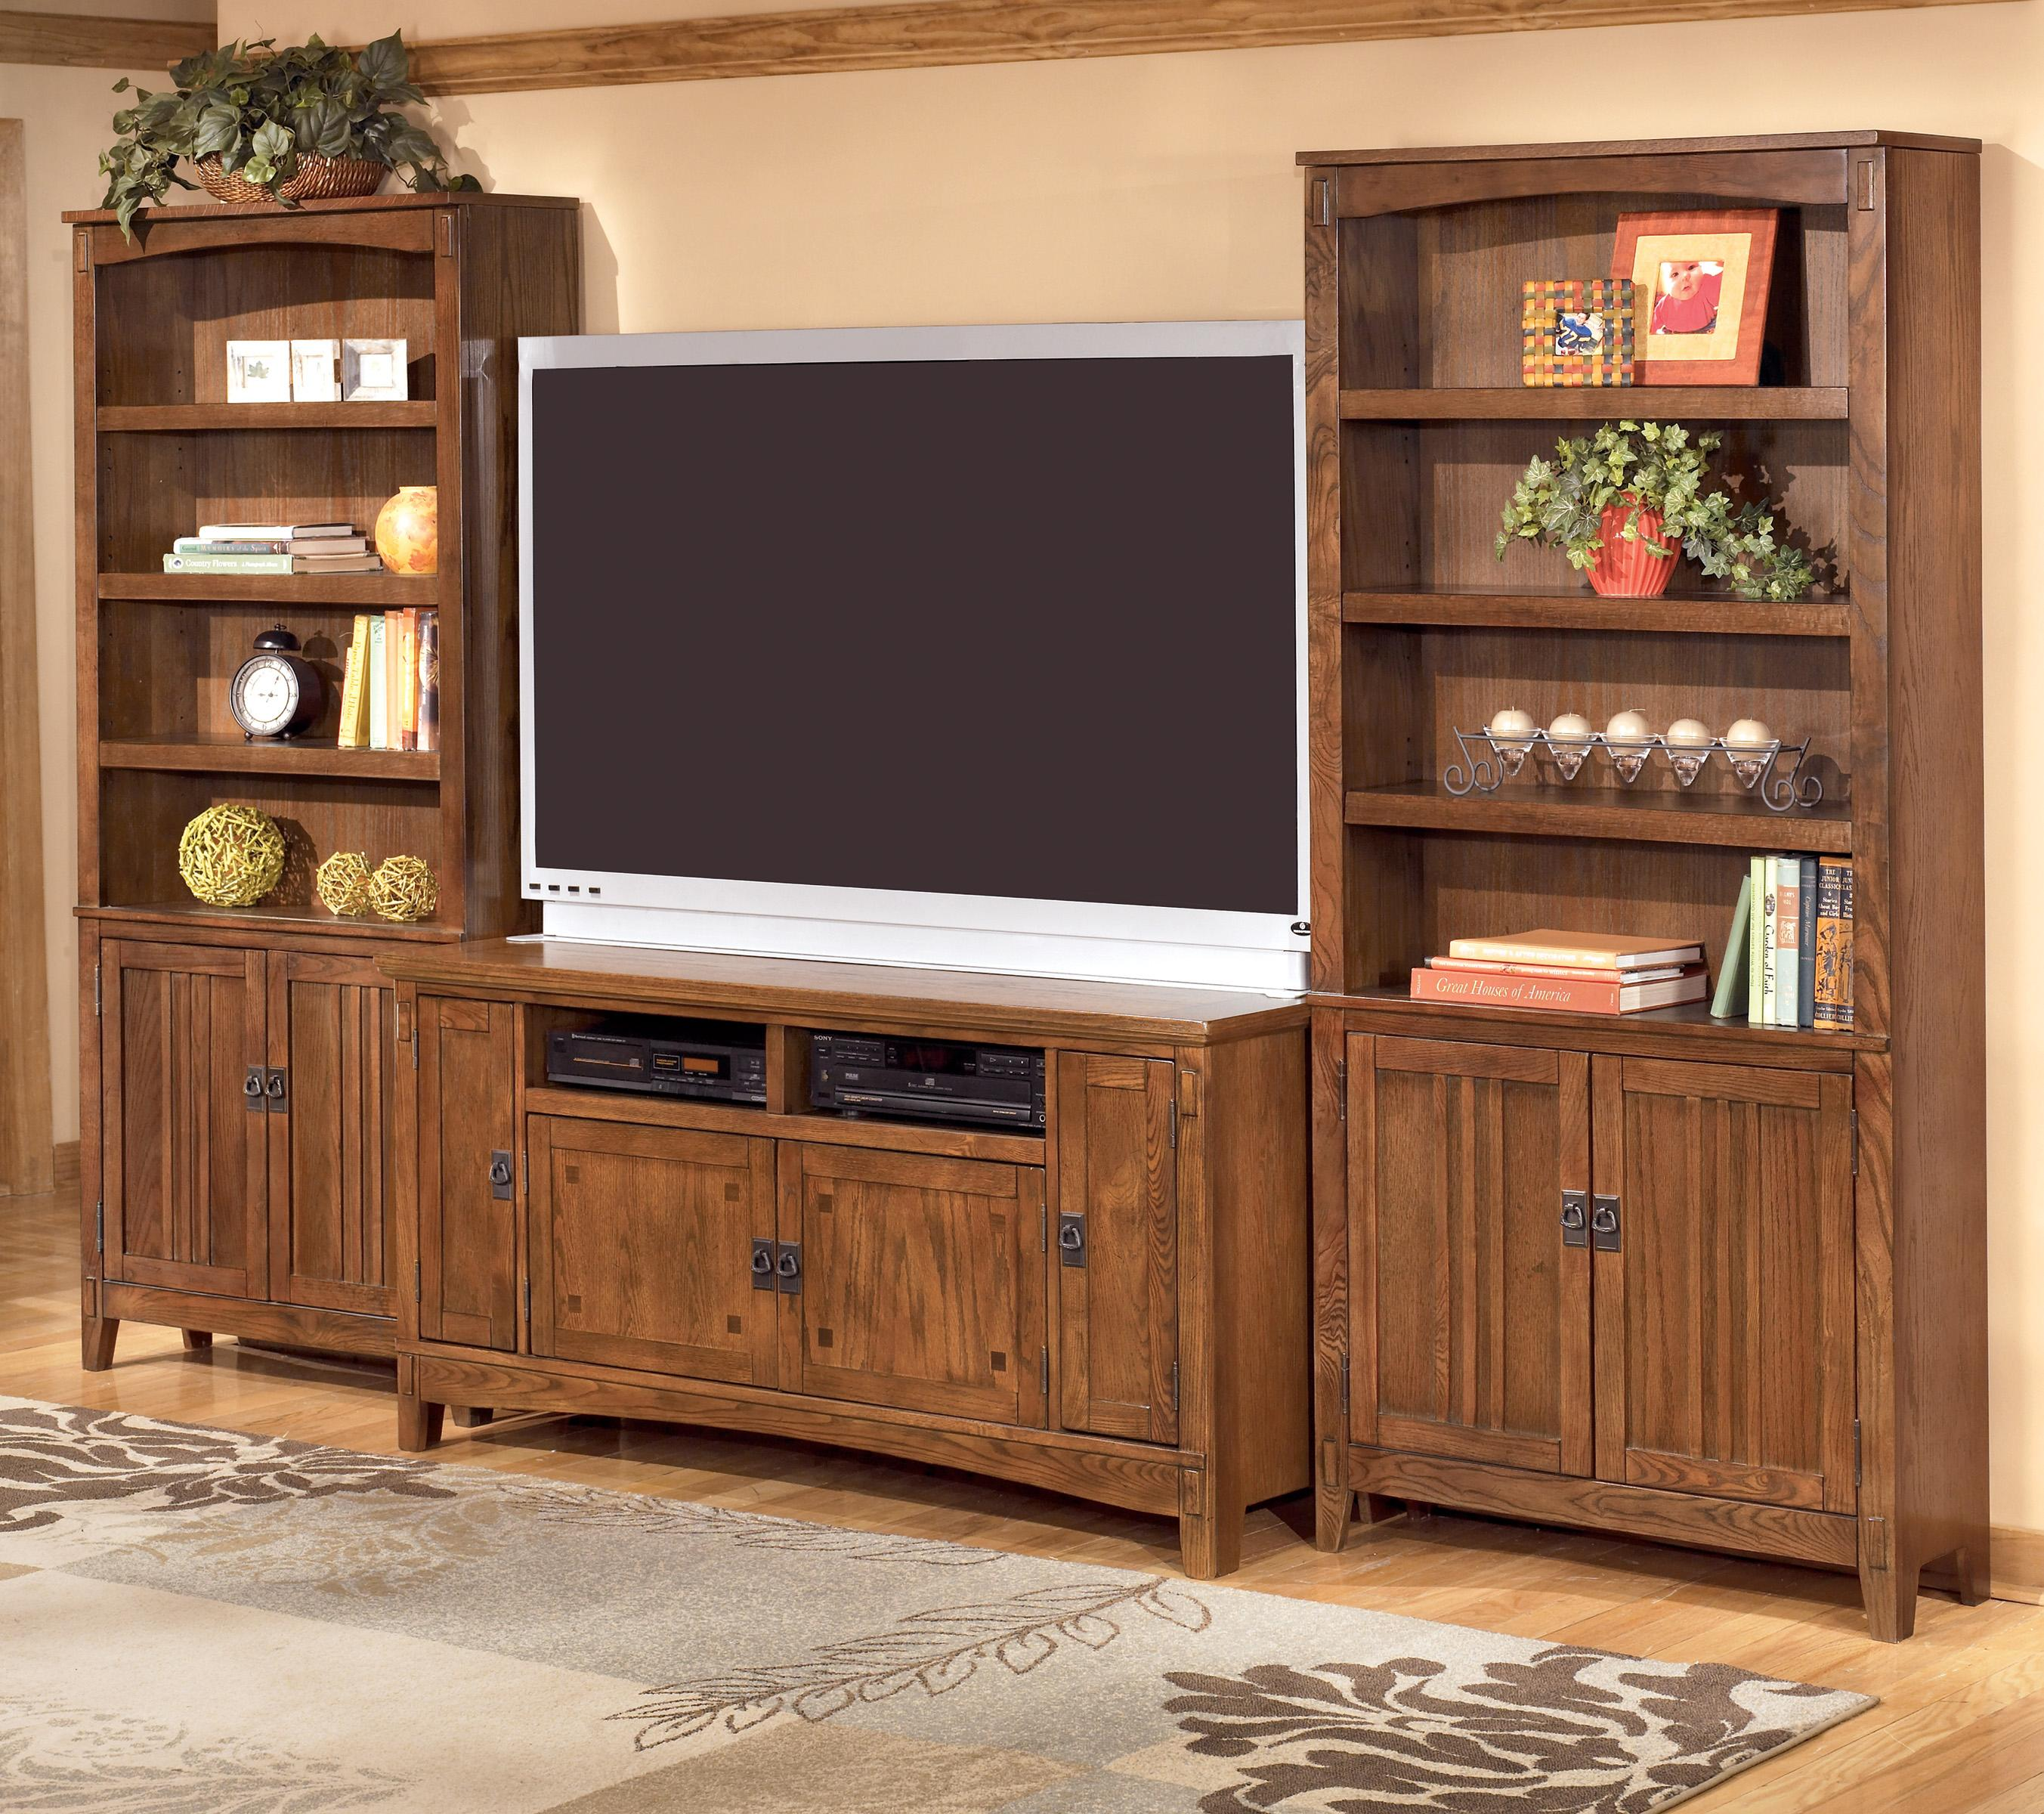 Ashley Furniture Cross Island 60 Inch TV Stand & 2